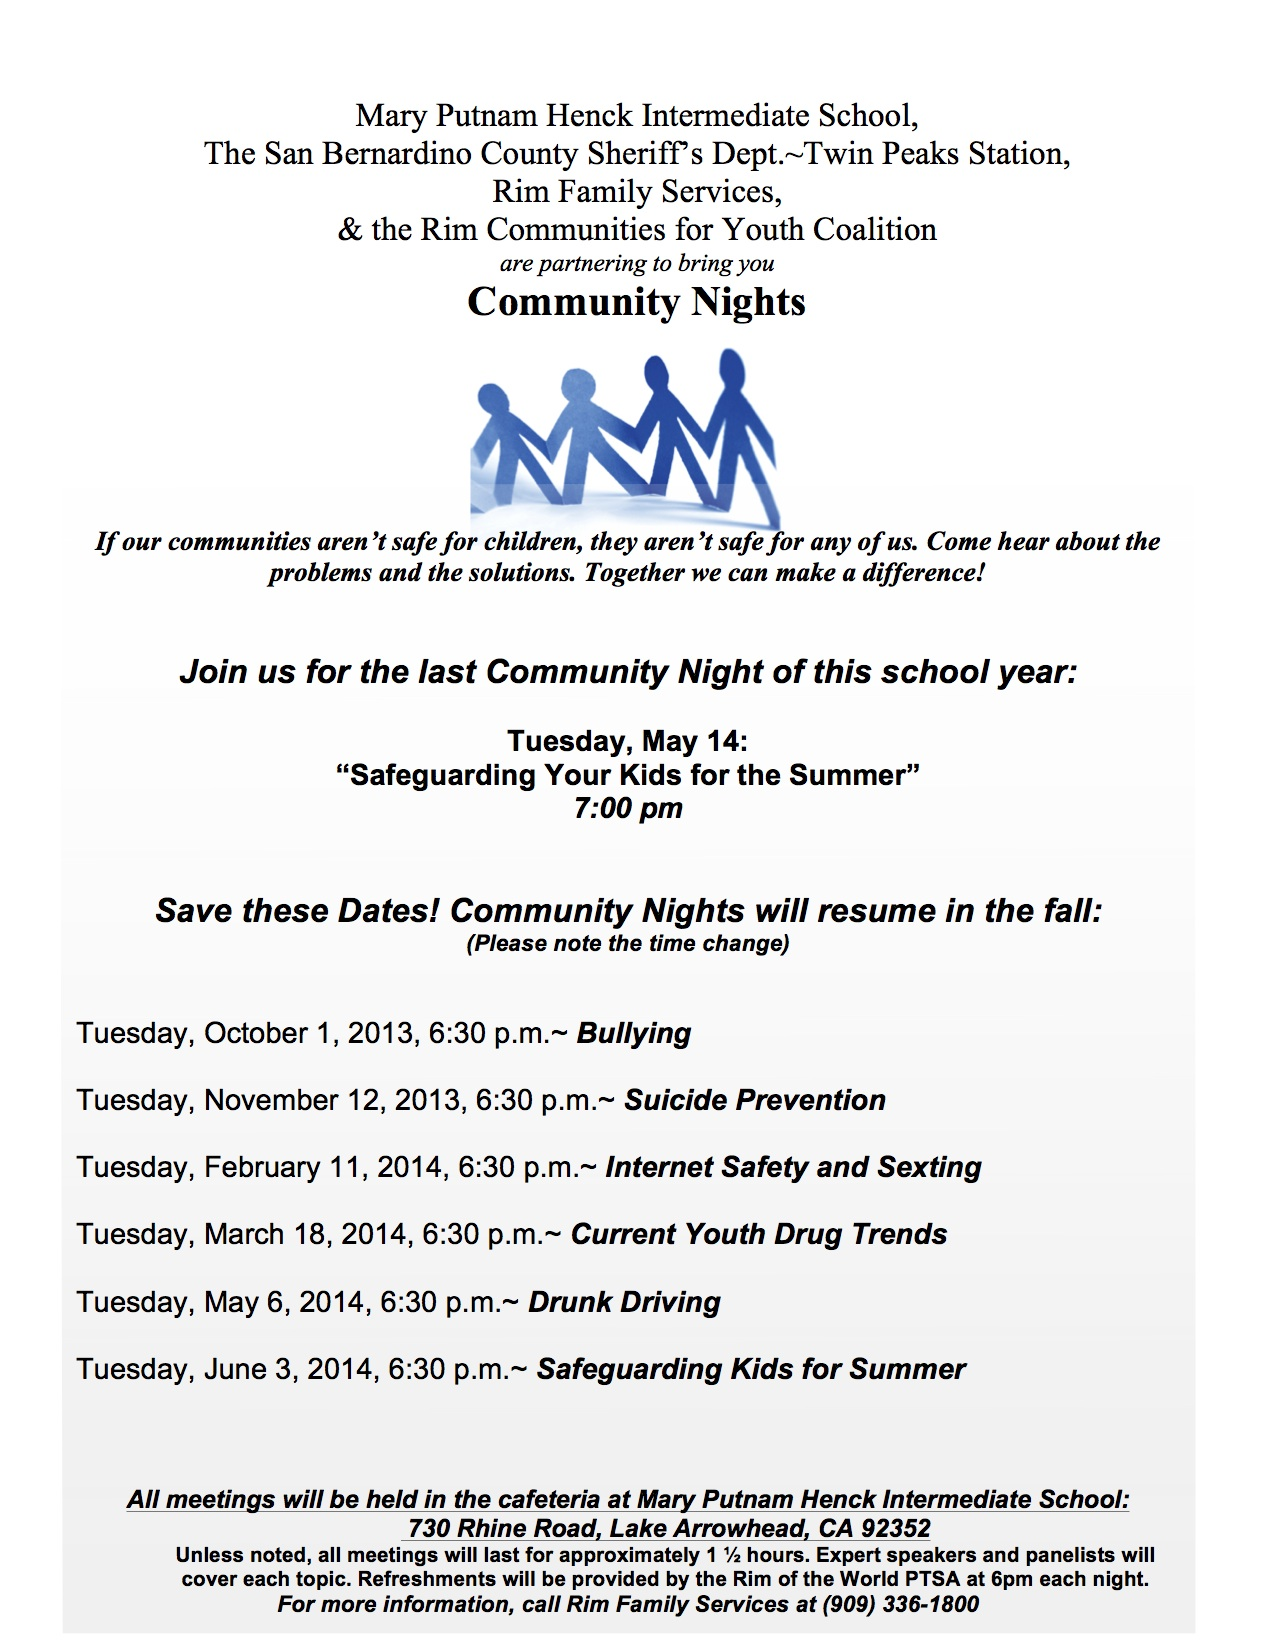 Flyer Seven-Community Nights 2013-2014